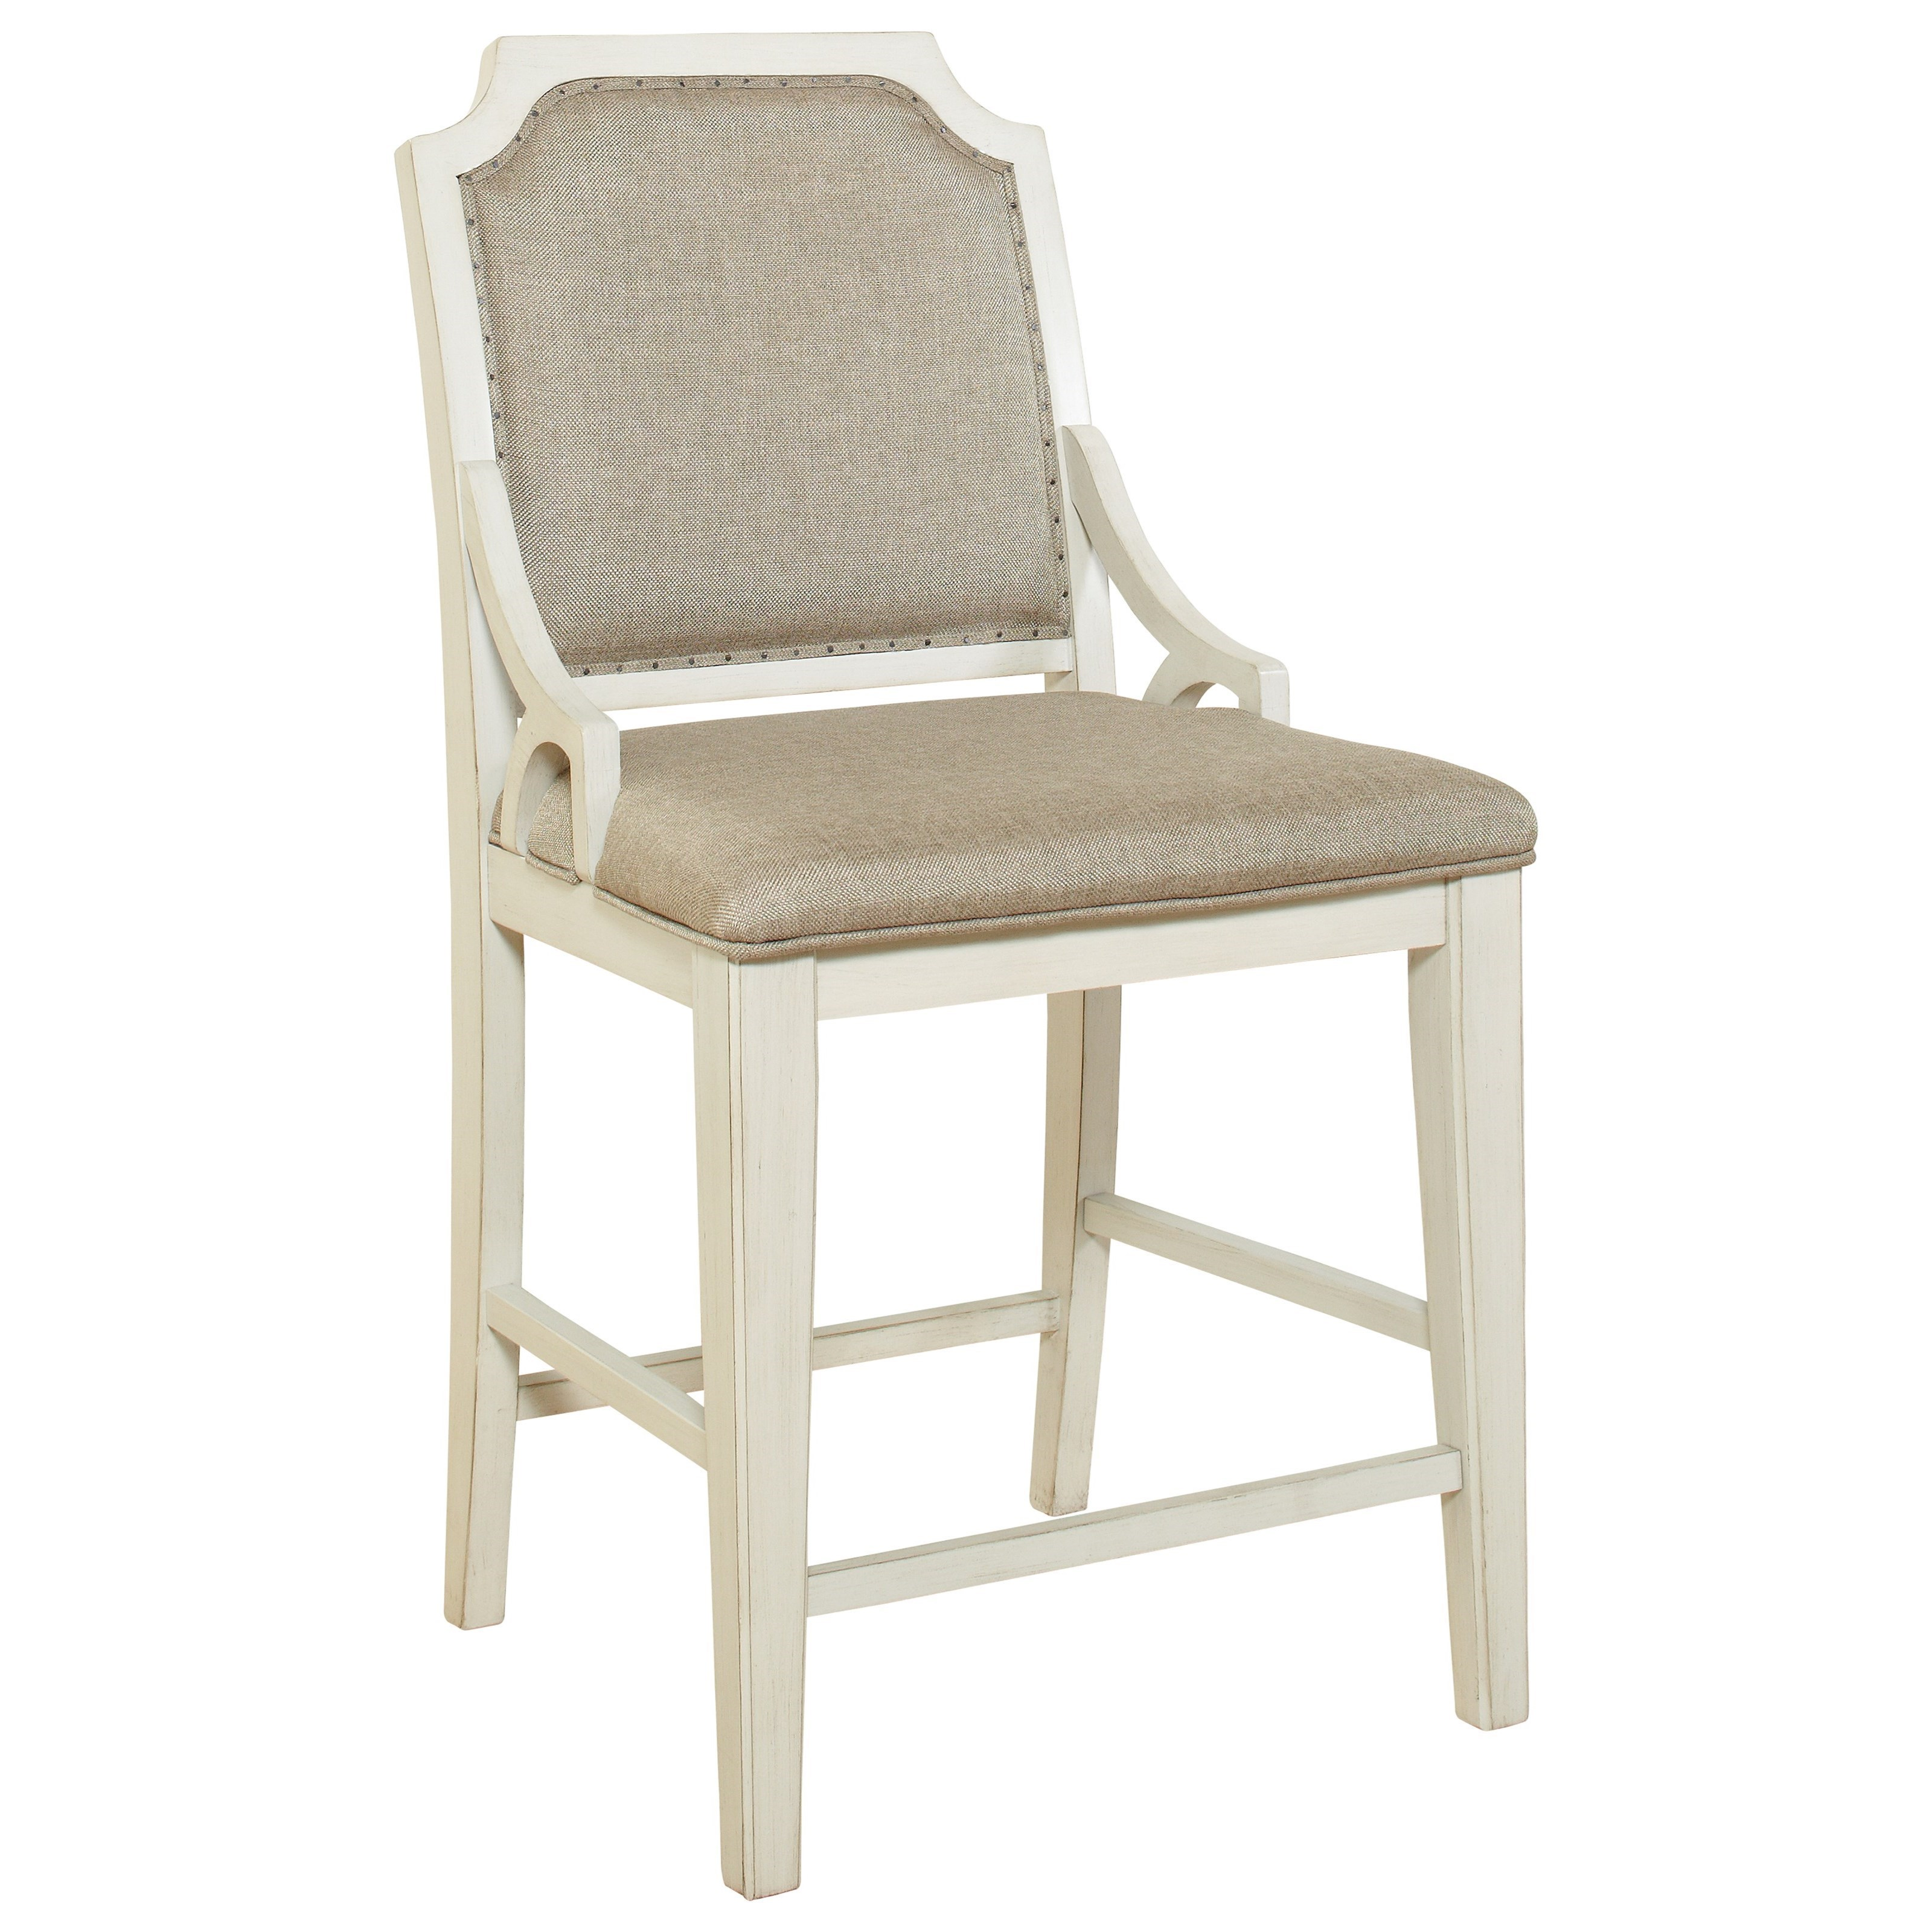 Avalon Furniture Mystic Cay Gathering Chair with